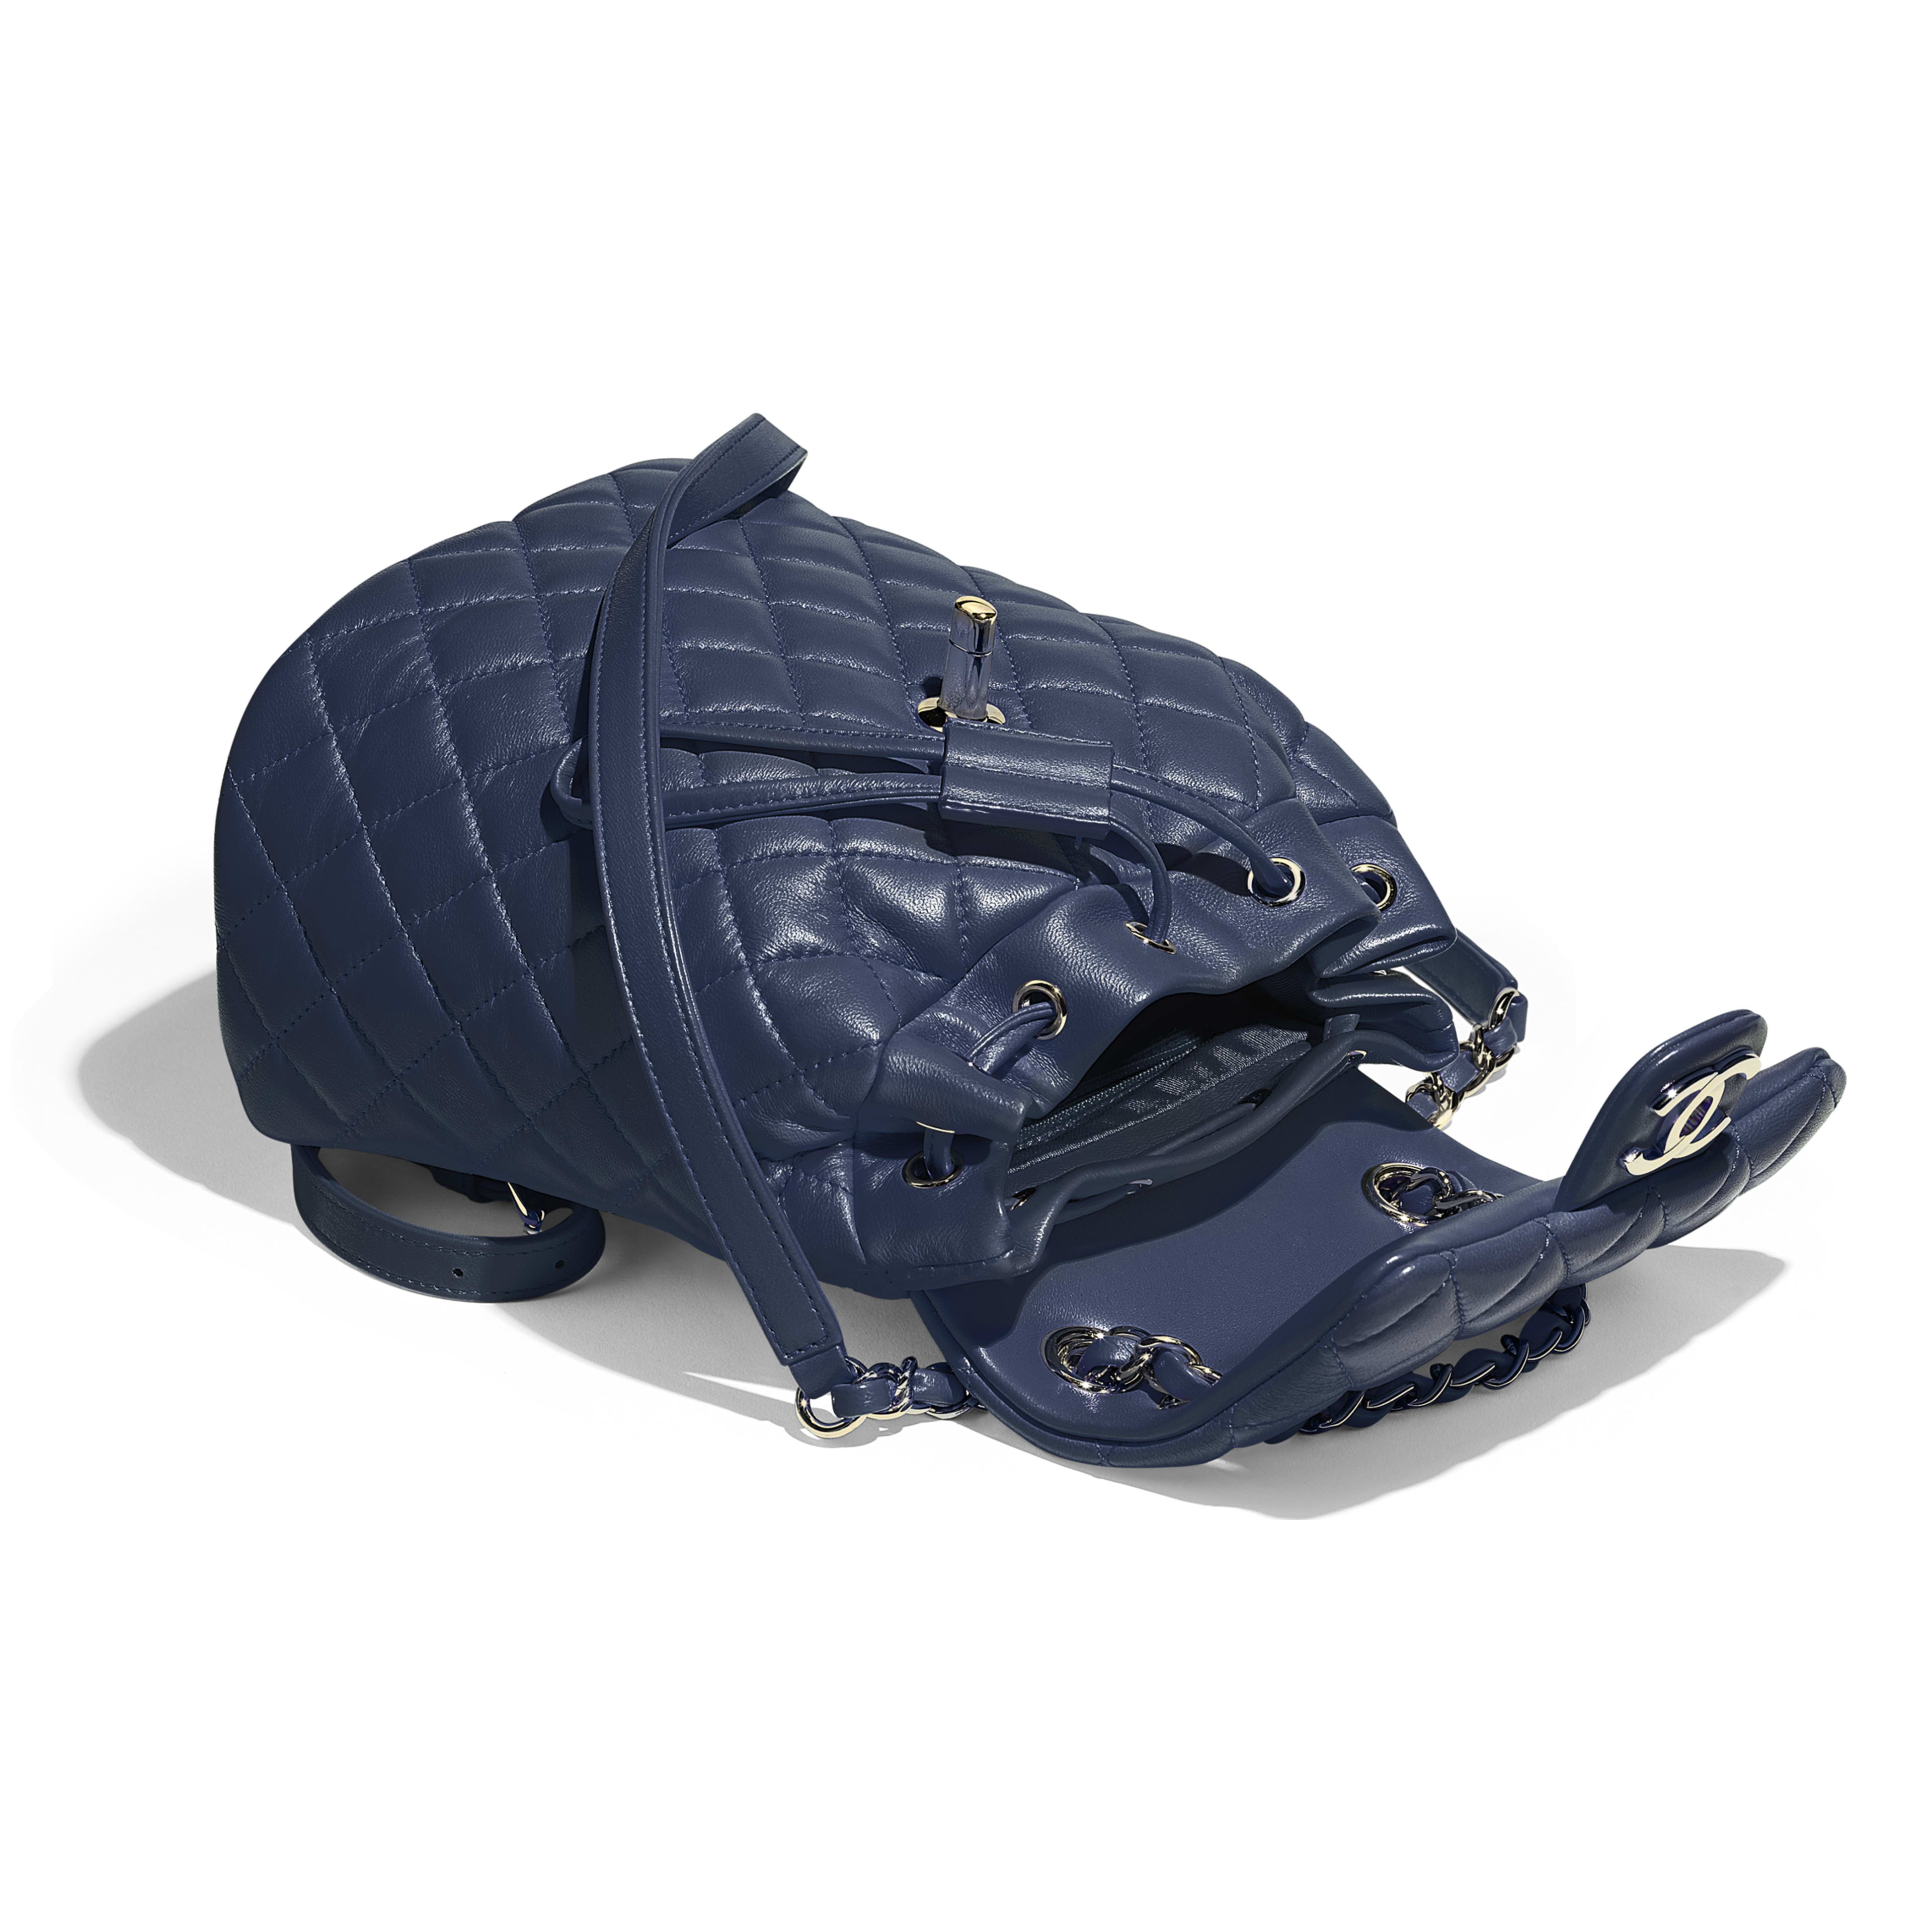 Backpack - Navy Blue - Lambskin & Gold-Tone Metal - Other view - see full sized version